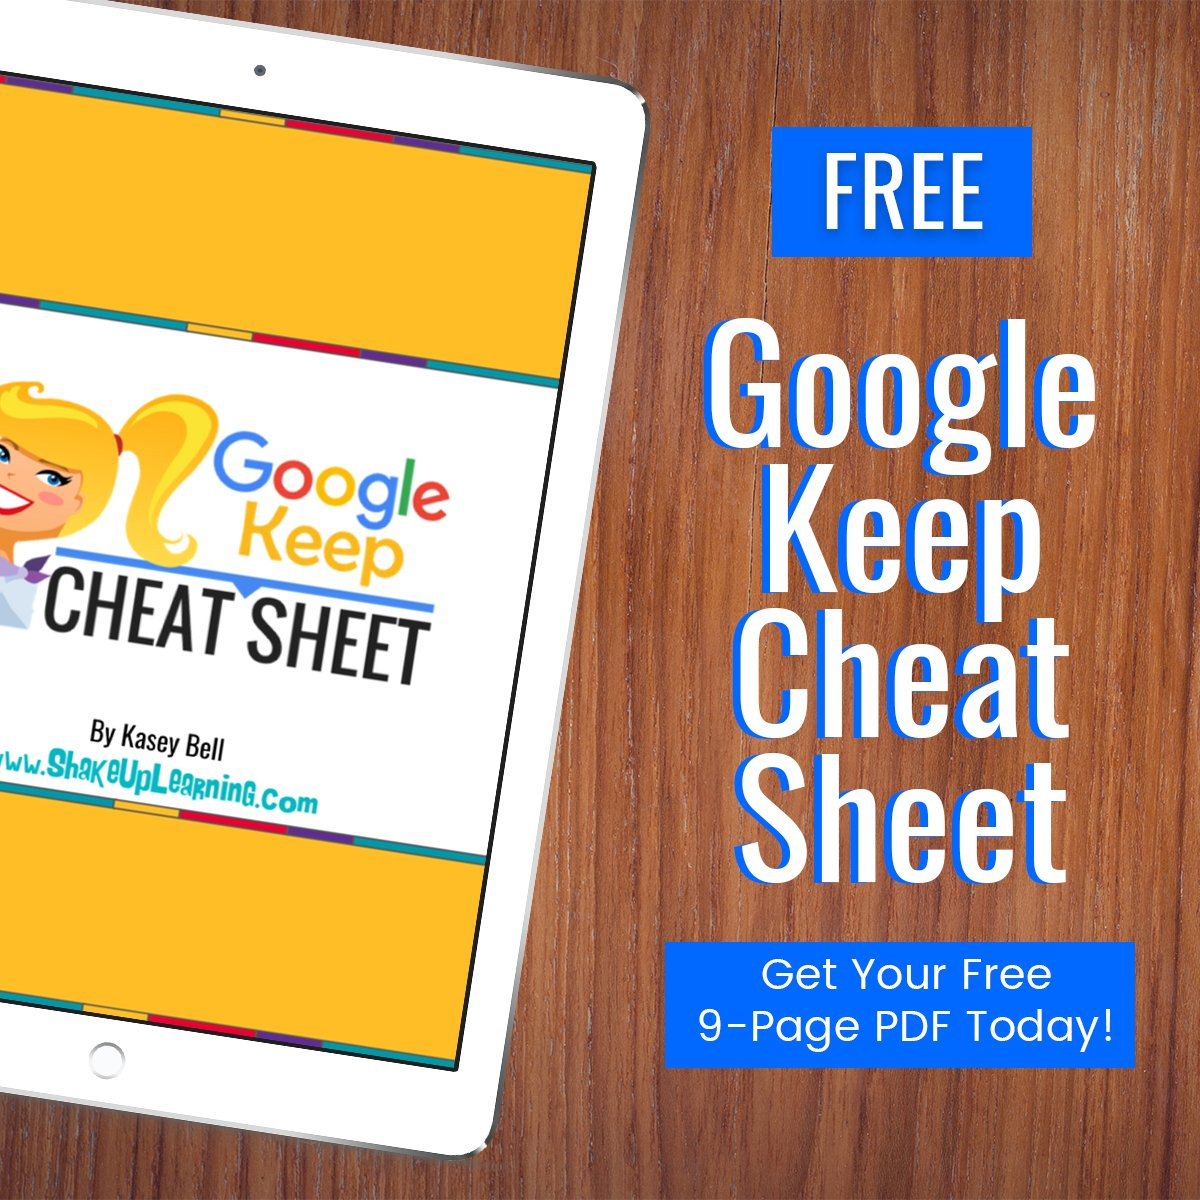 Are you interested in a cheat sheet of #Google Keep?   Look no further! Click on the link below to download! #edtech #edchat #gsuiteedu #googleclassroom #shakeuplearning #teaching #k12  https://t.co/xm28bQEoi2 https://t.co/lDqKndwrhf